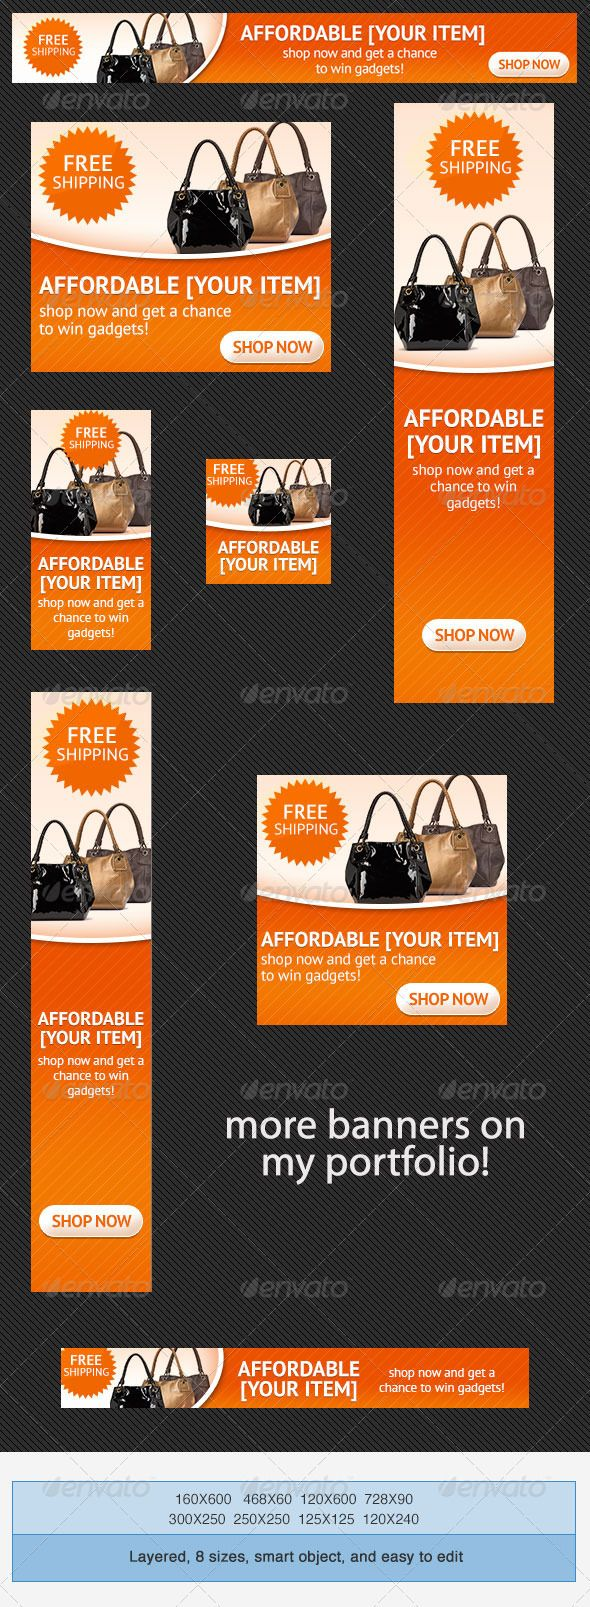 online shopping psd banner ad template beautiful goods and buy online shopping psd banner ad template by admiral adictus on graphicriver here s another set of psd banner ad template this psd banner ad template is